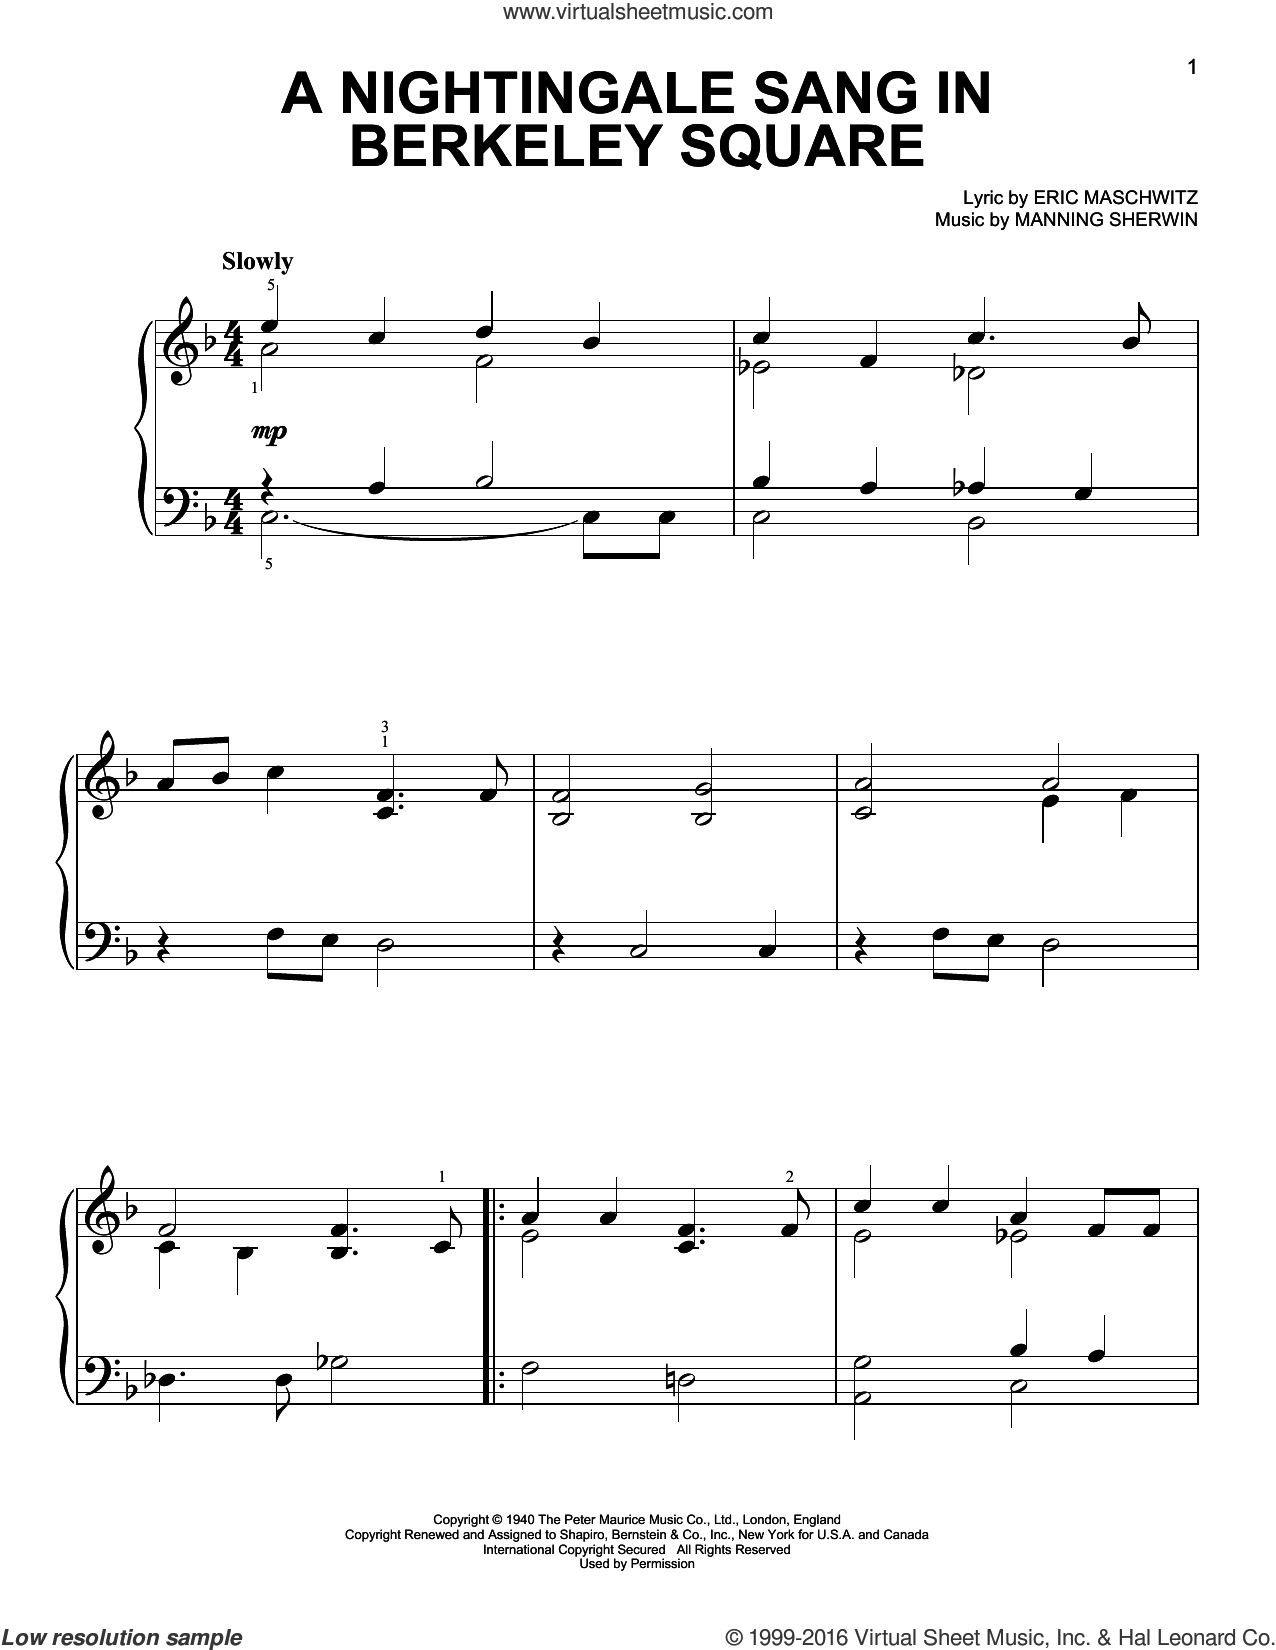 A Nightingale Sang In Berkeley Square sheet music for piano solo by Manning Sherwin